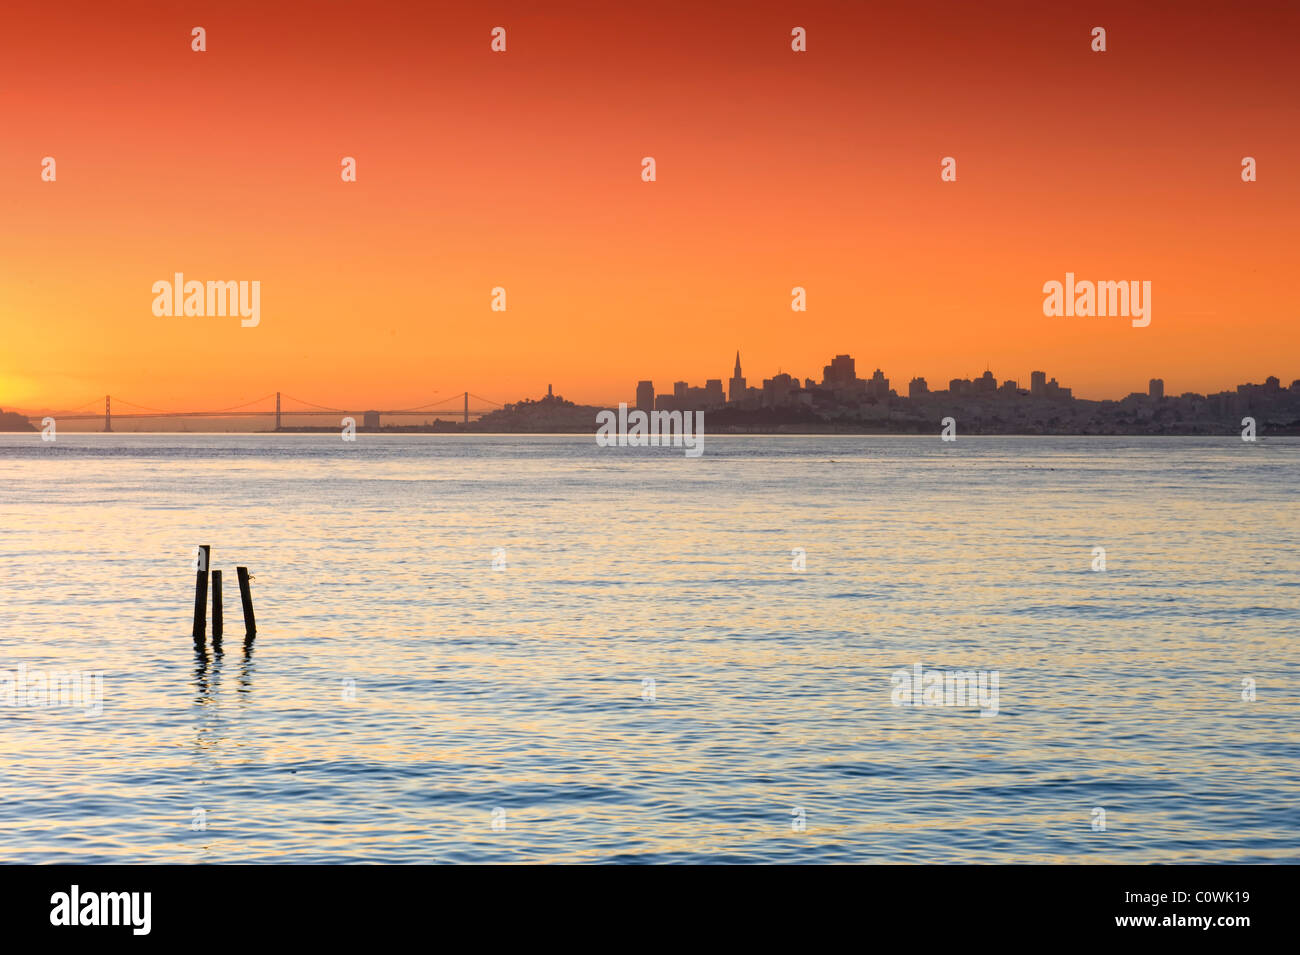 Usa, California, San Francisco,  city skyline - Stock Image